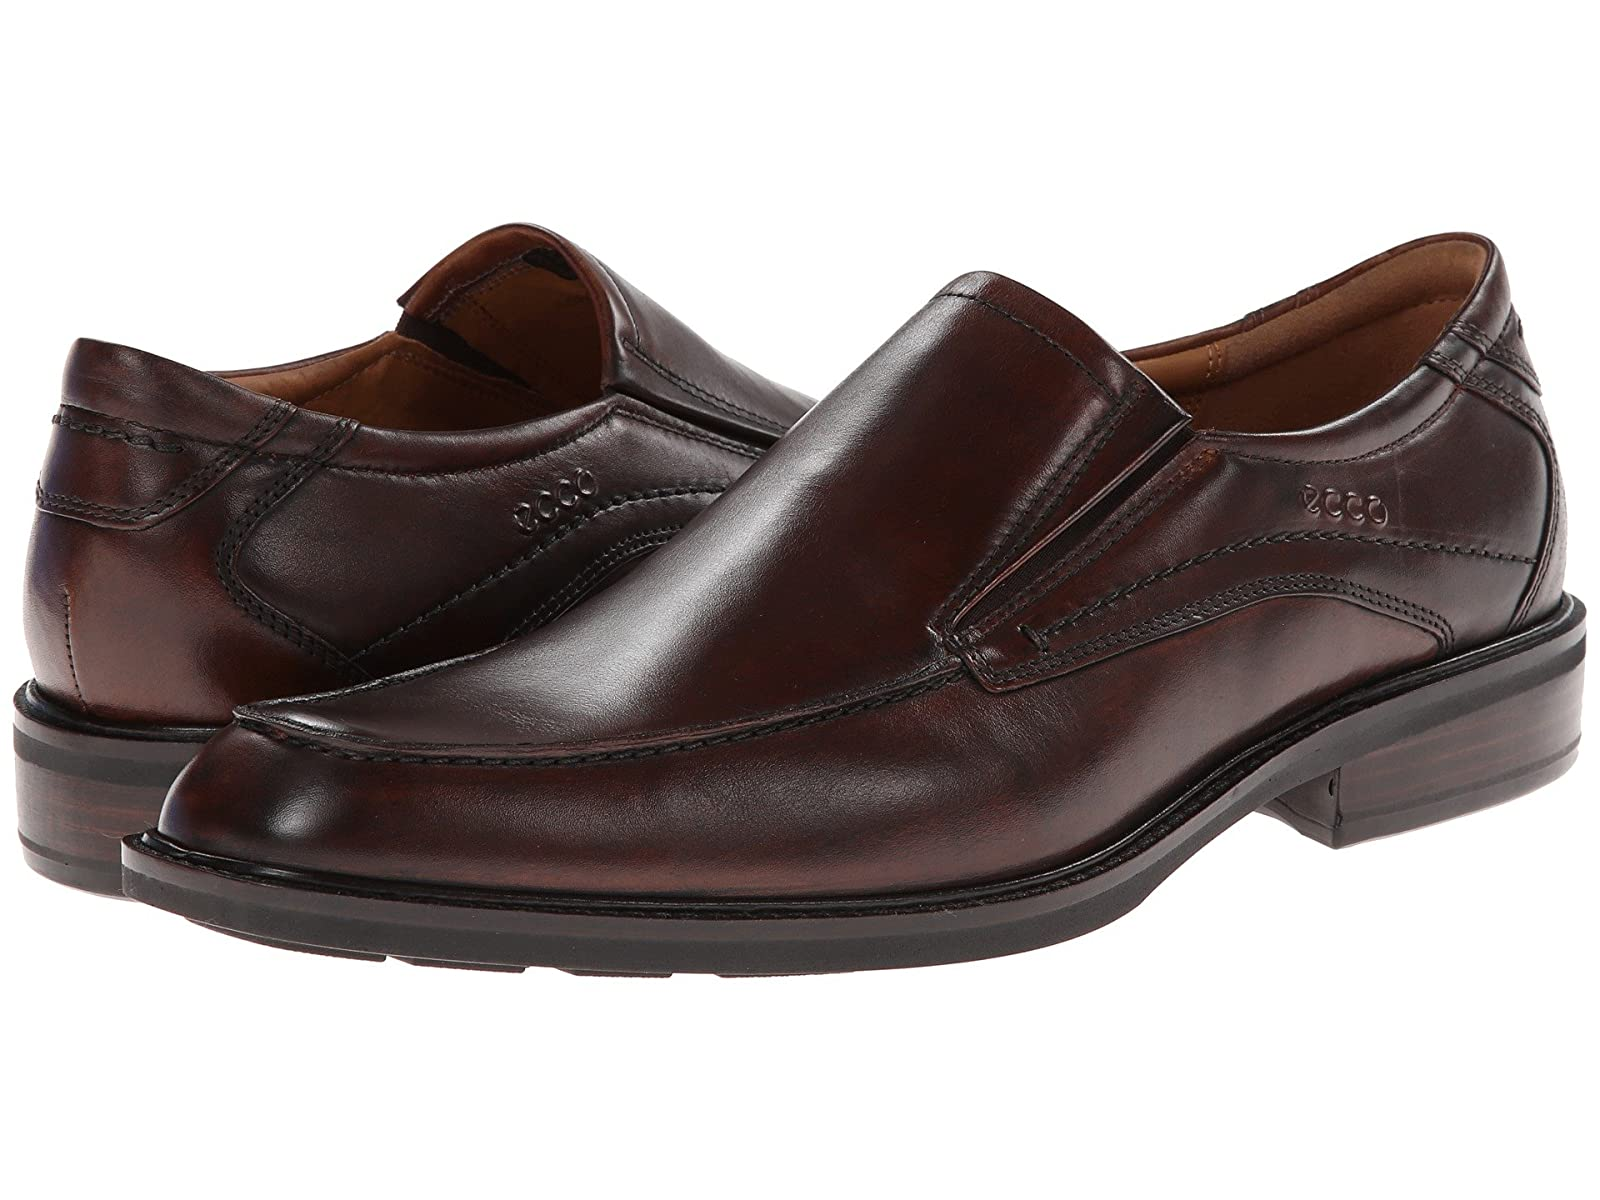 ECCO Windsor Apron Slip-OnCheap and distinctive eye-catching shoes